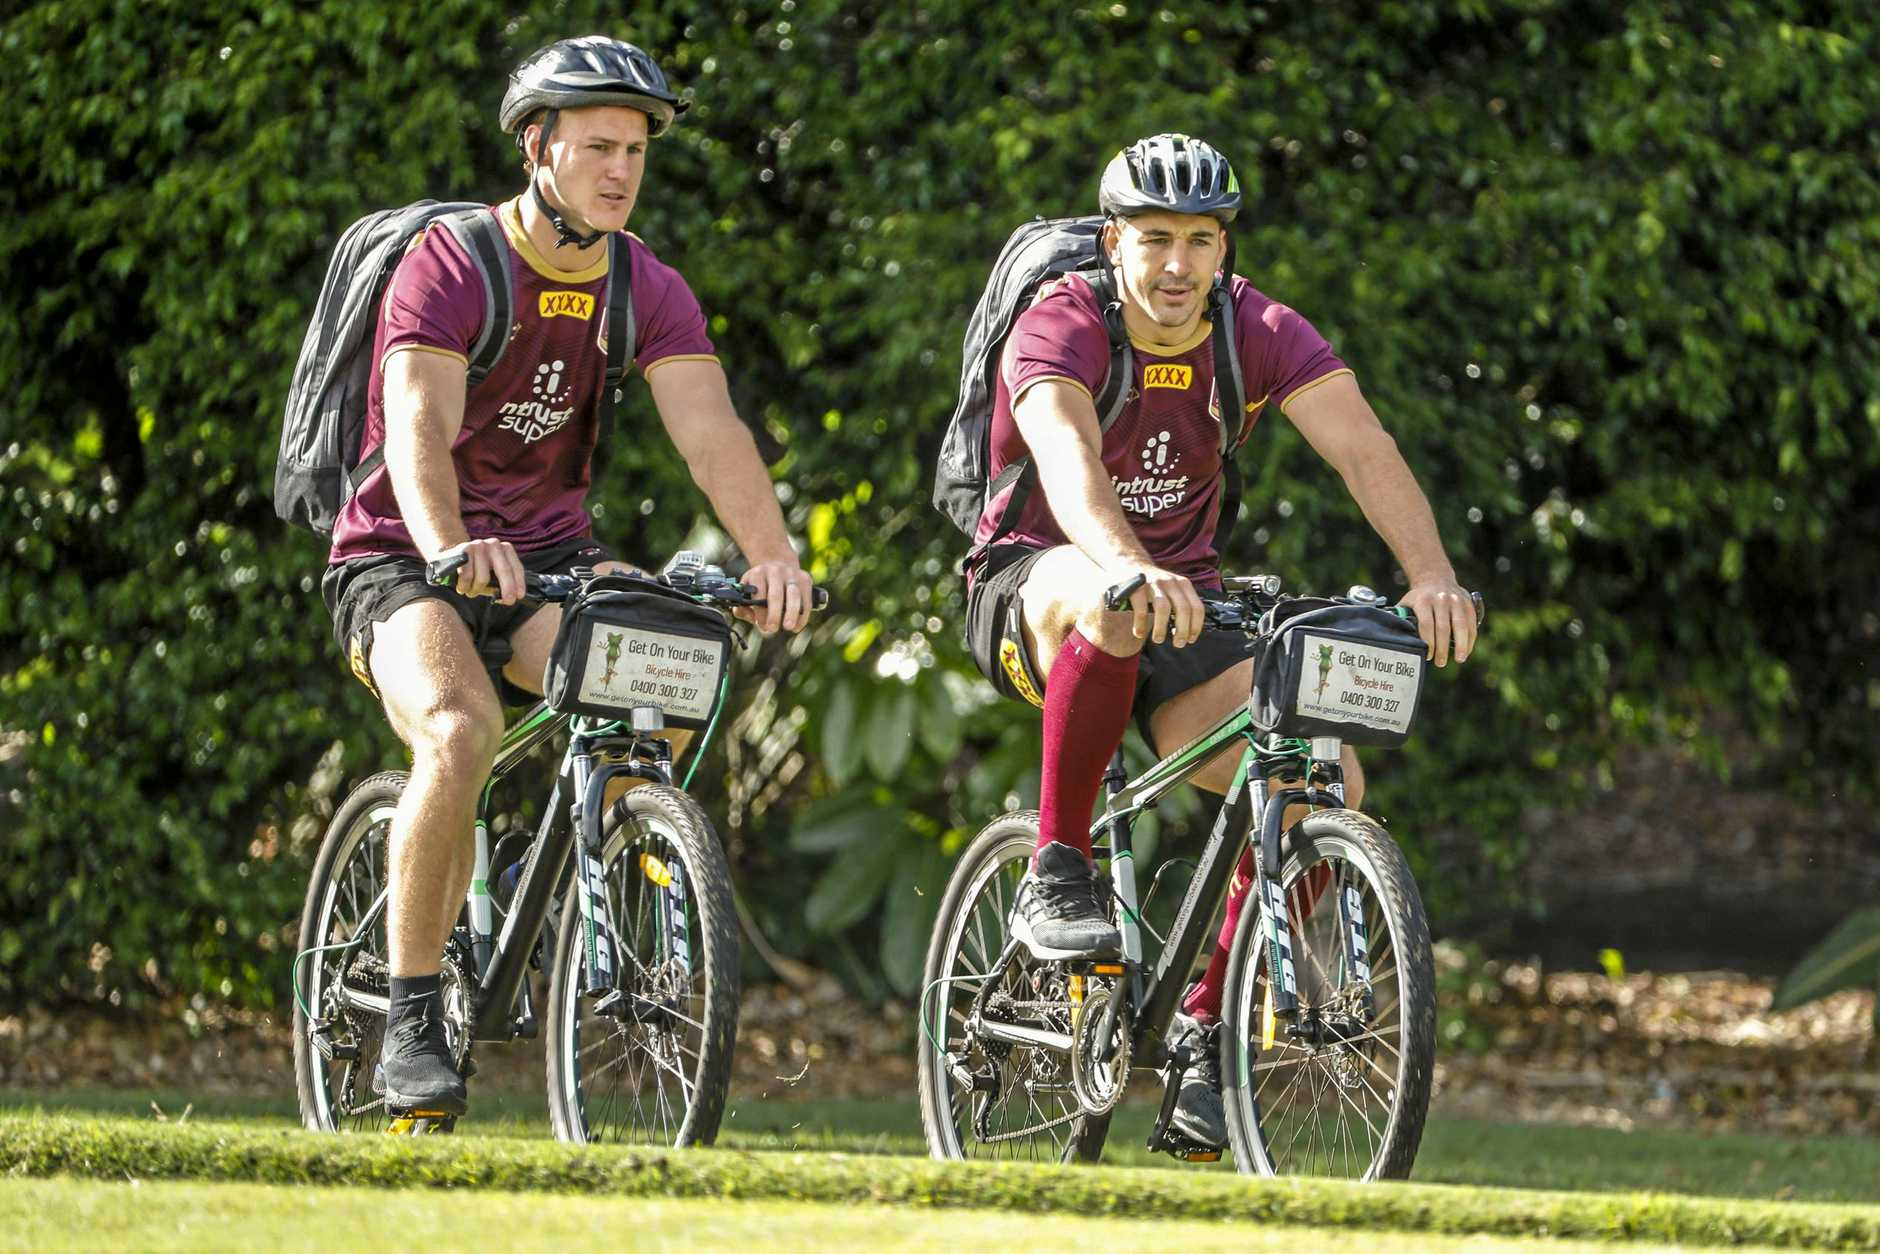 Daly Cherry-Evans and Billy Slater arrive for the Queensland Maroons team training session at the InterContinental Sanctuary Cove Resort on the Gold Coast, Thursday, July 5, 2018. Queensland are in camp to prepare for game three of the 2018 State of Origin series against the NSW Blues. (AAP Image/Glenn Hunt) NO ARCHIVING